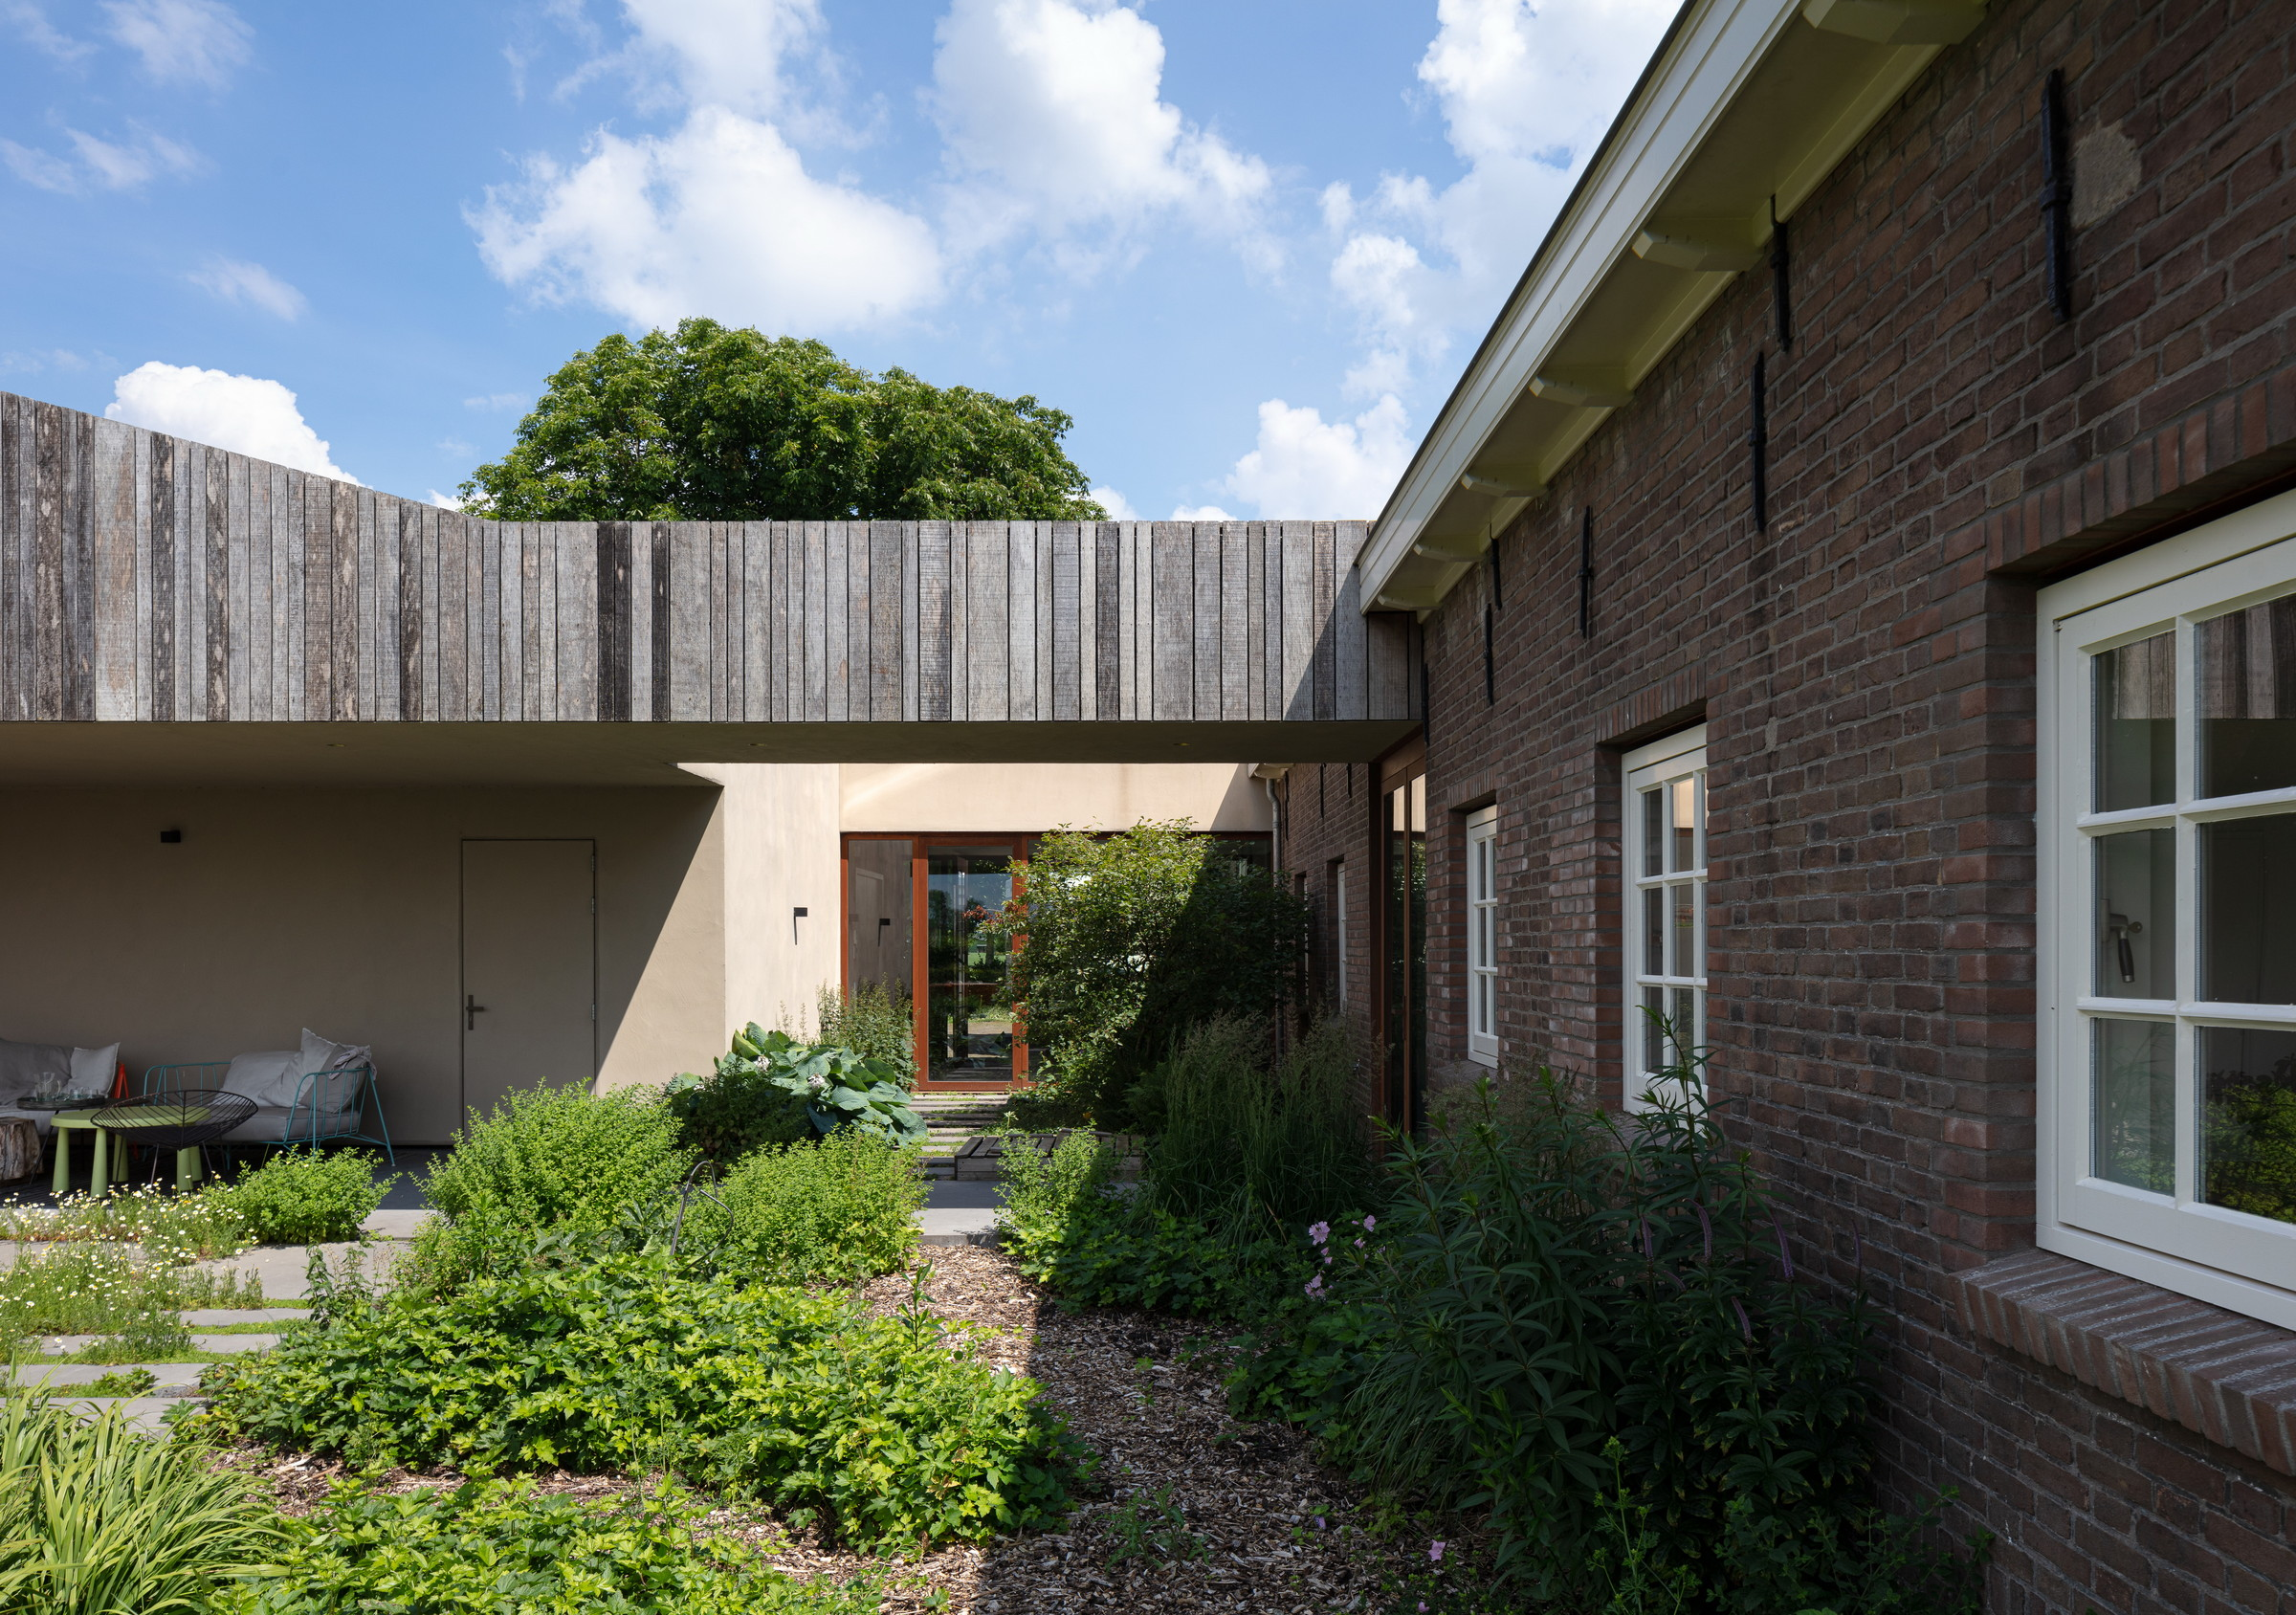 13-Zecc_Architecten-Farm_house-Utrecht-wood-concret.JPG